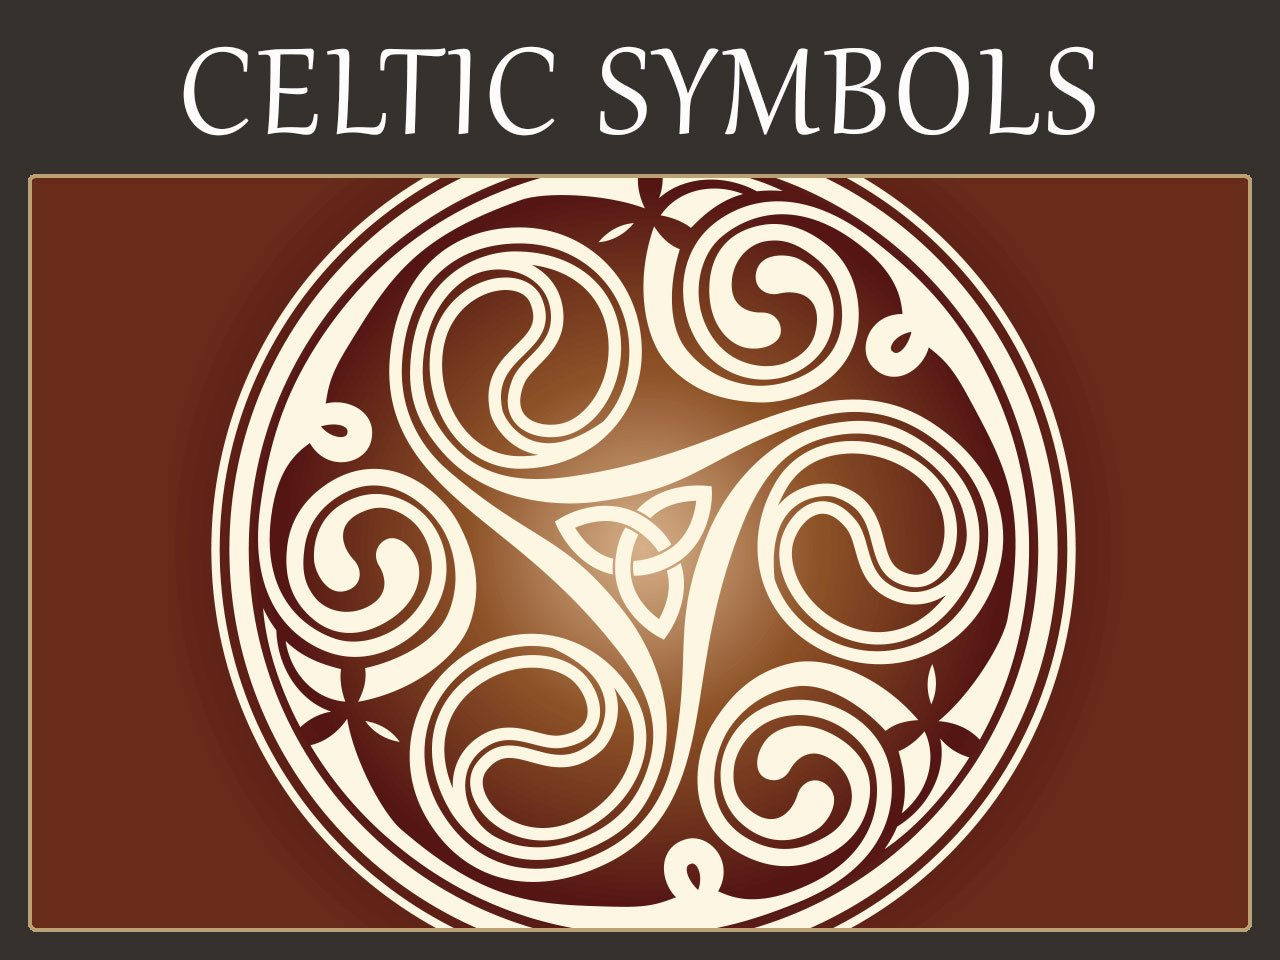 Celtic symbols meanings celtic cross triquetra celtic knot celtic symbols meanings 1280x960 biocorpaavc